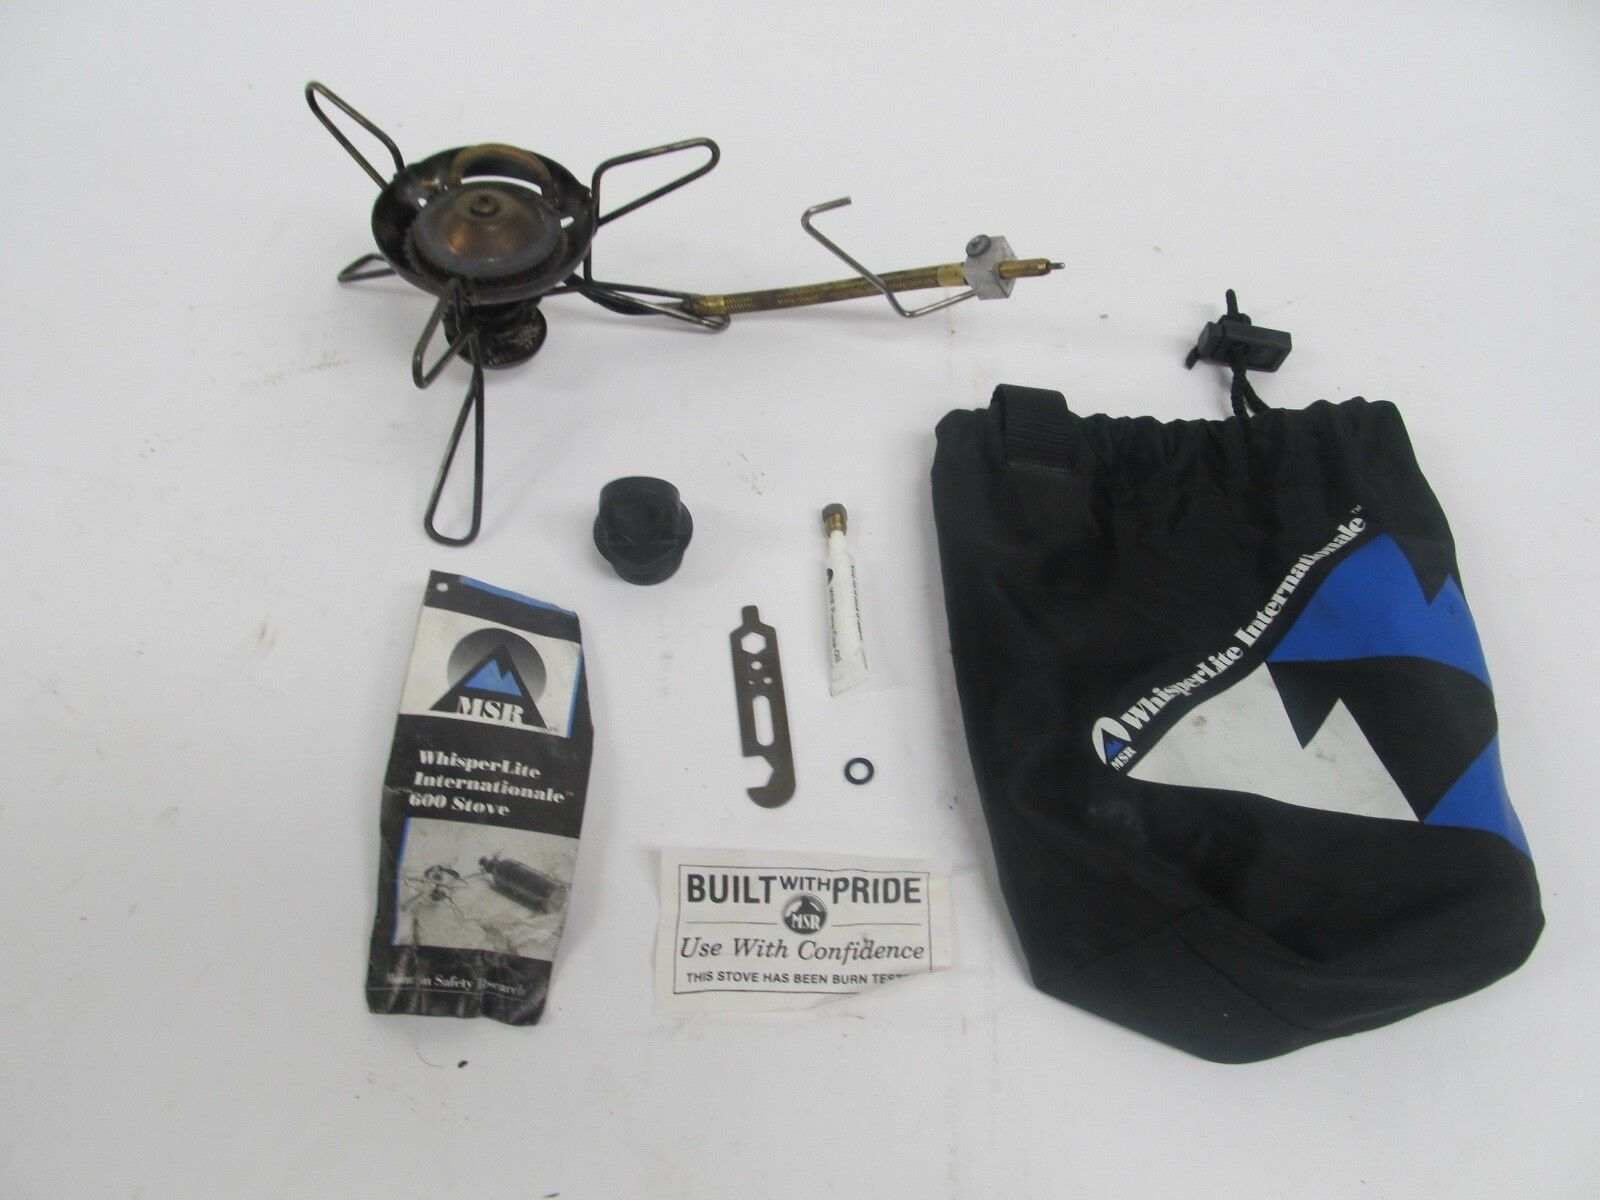 MSR WHISPERLITE INTERNATIONALE 600 CAMPING STOVE - ACCESSORIES - BAG